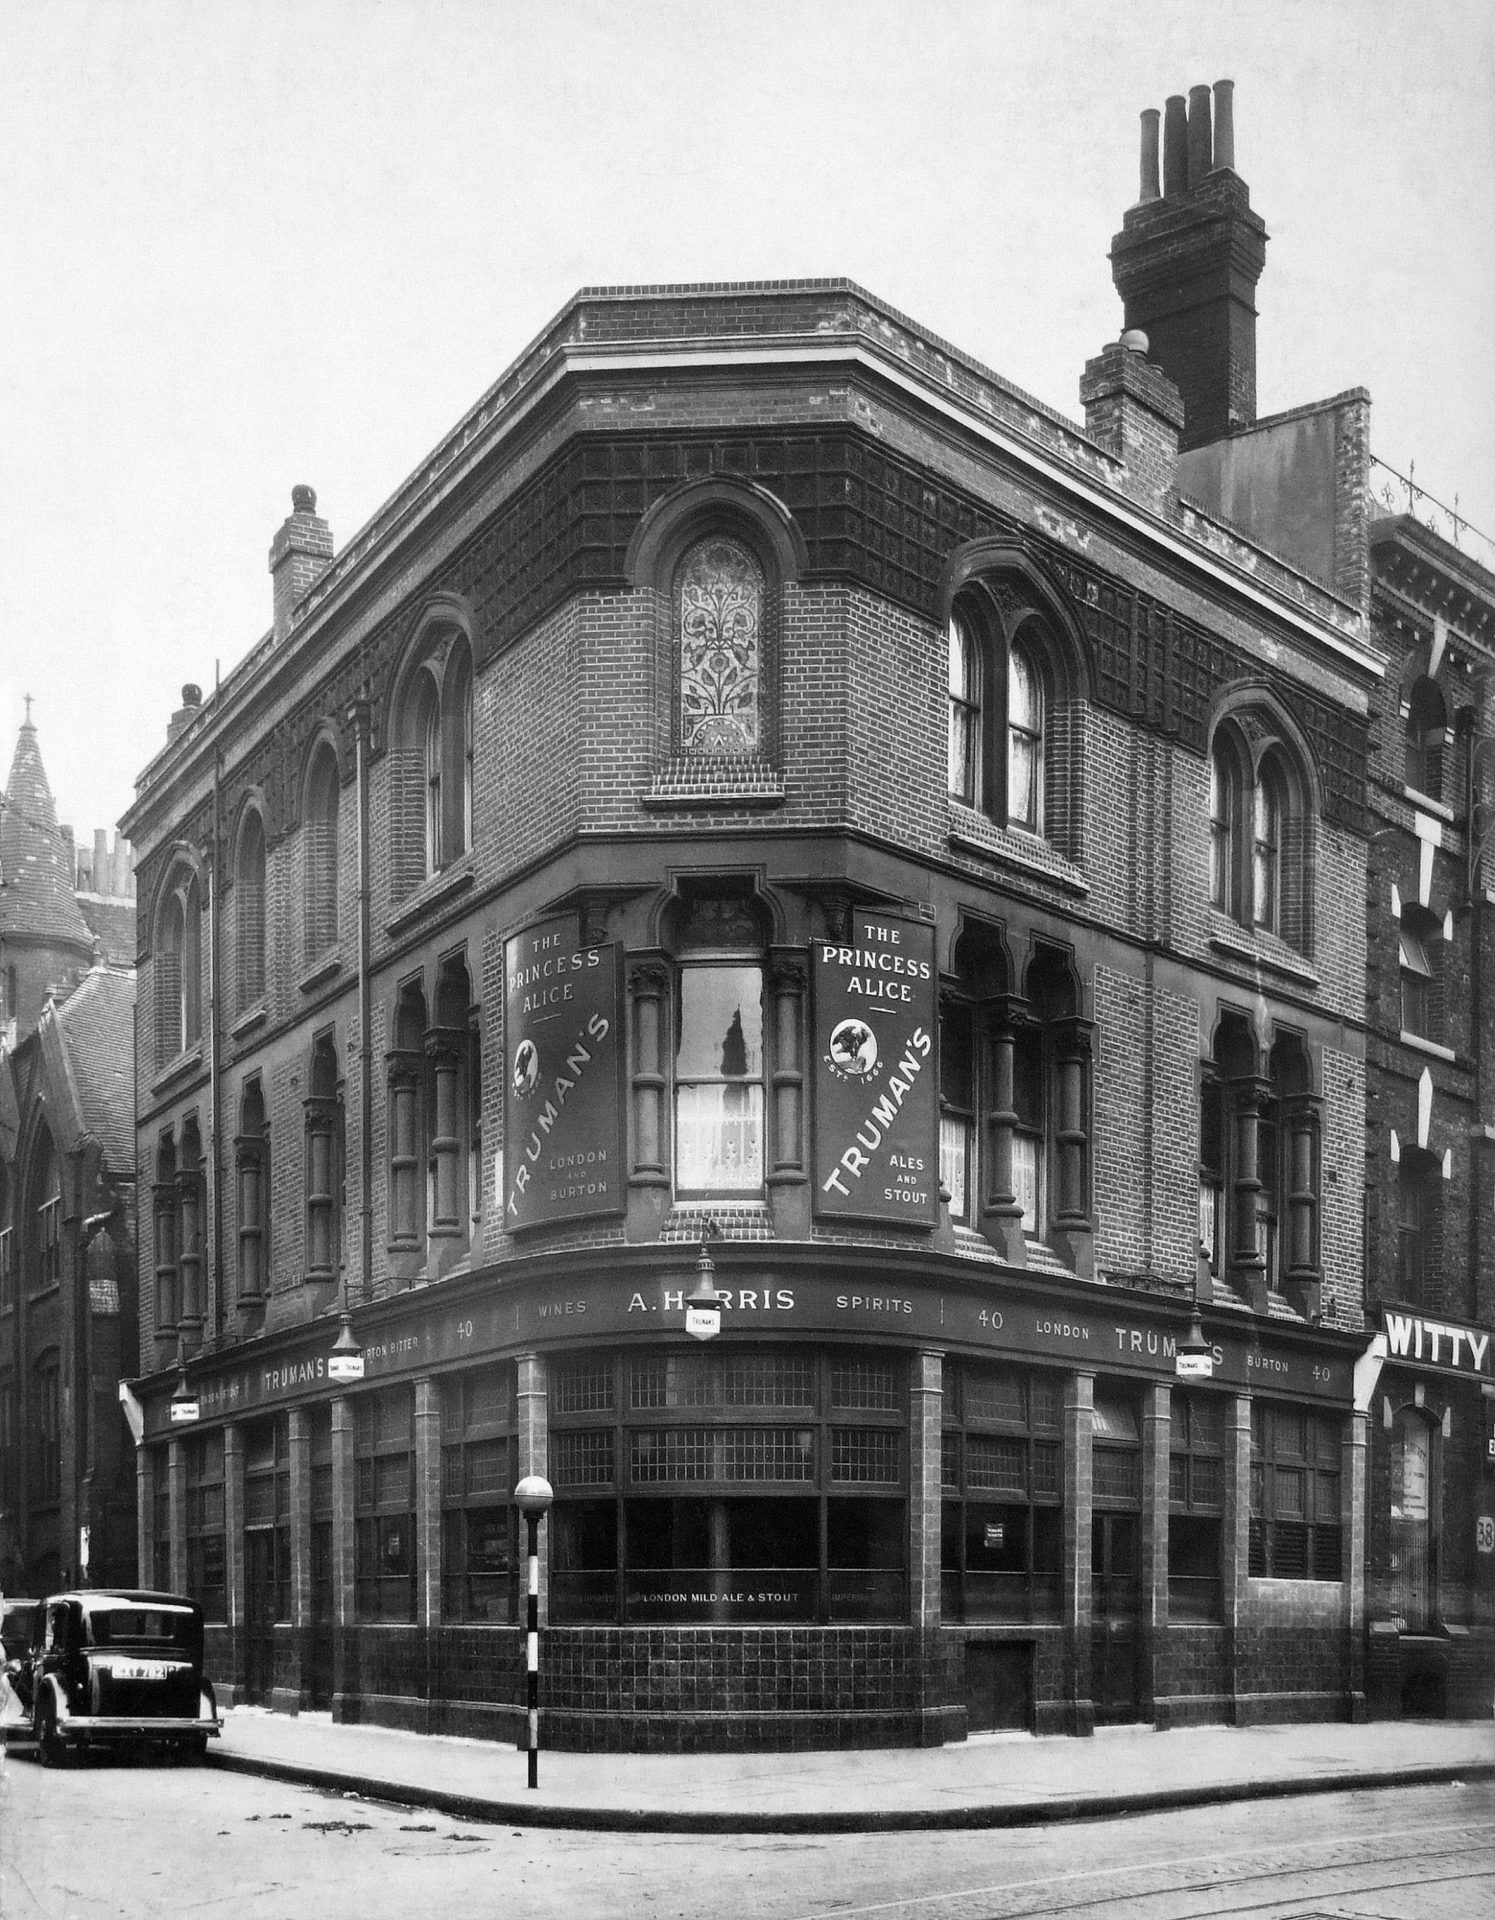 Jack the Ripper Public Houses The Princess Alice 1950s